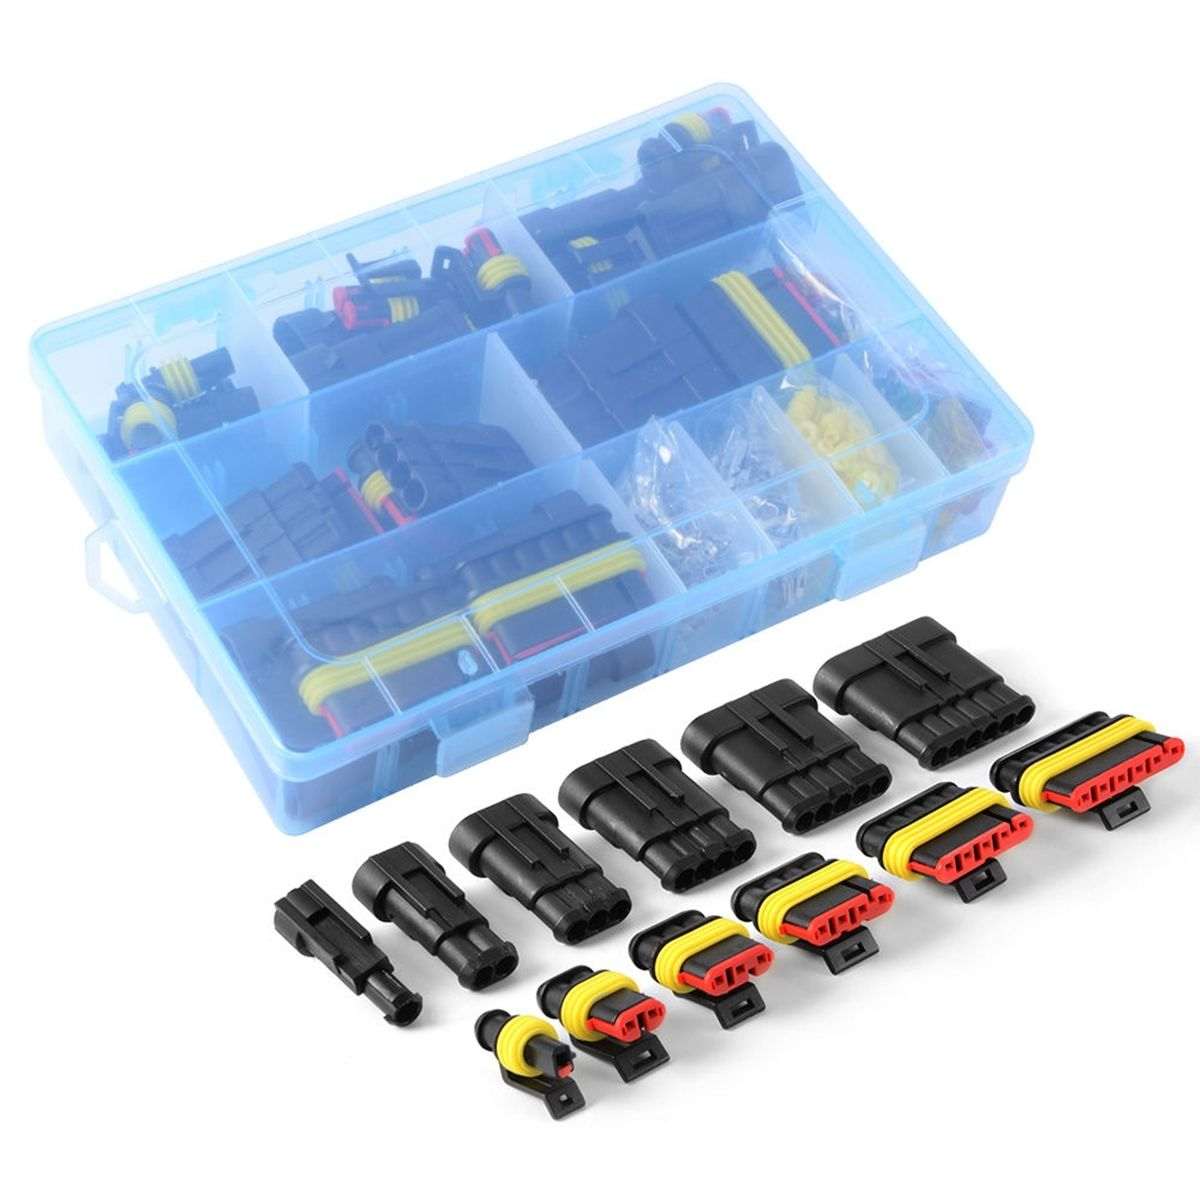 1-6 Pin Way Car Electrical Wire Waterproof Connector Plug Terminal Fuse Case Kit1-6 Pin Way Car Electrical Wire Waterproof Connector Plug Terminal Fuse Case Kit